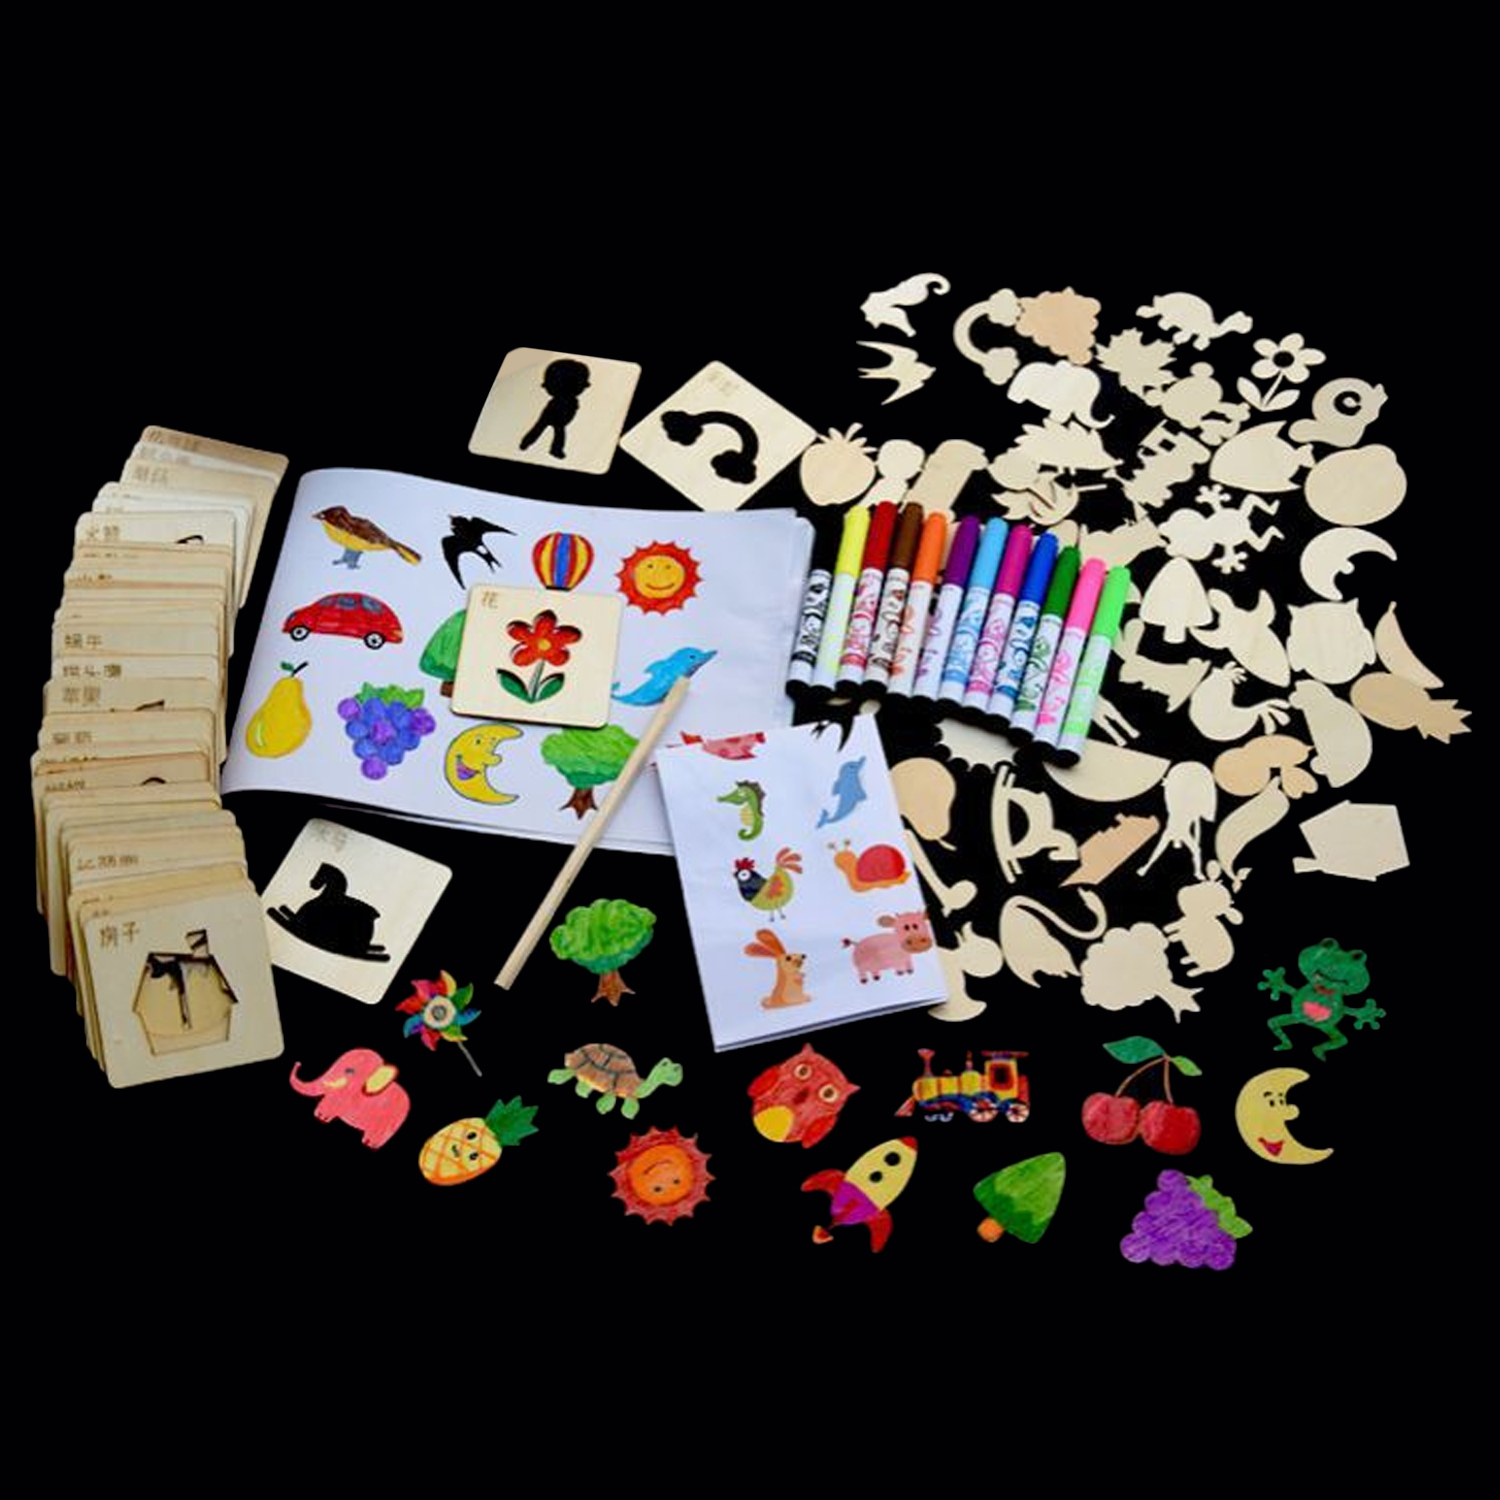 120Pcs Painting Colorful Stencil Kit Set With Brush Wood Chip Stencils Reference Drawing Pencil  School Random Pattern Gift Toys